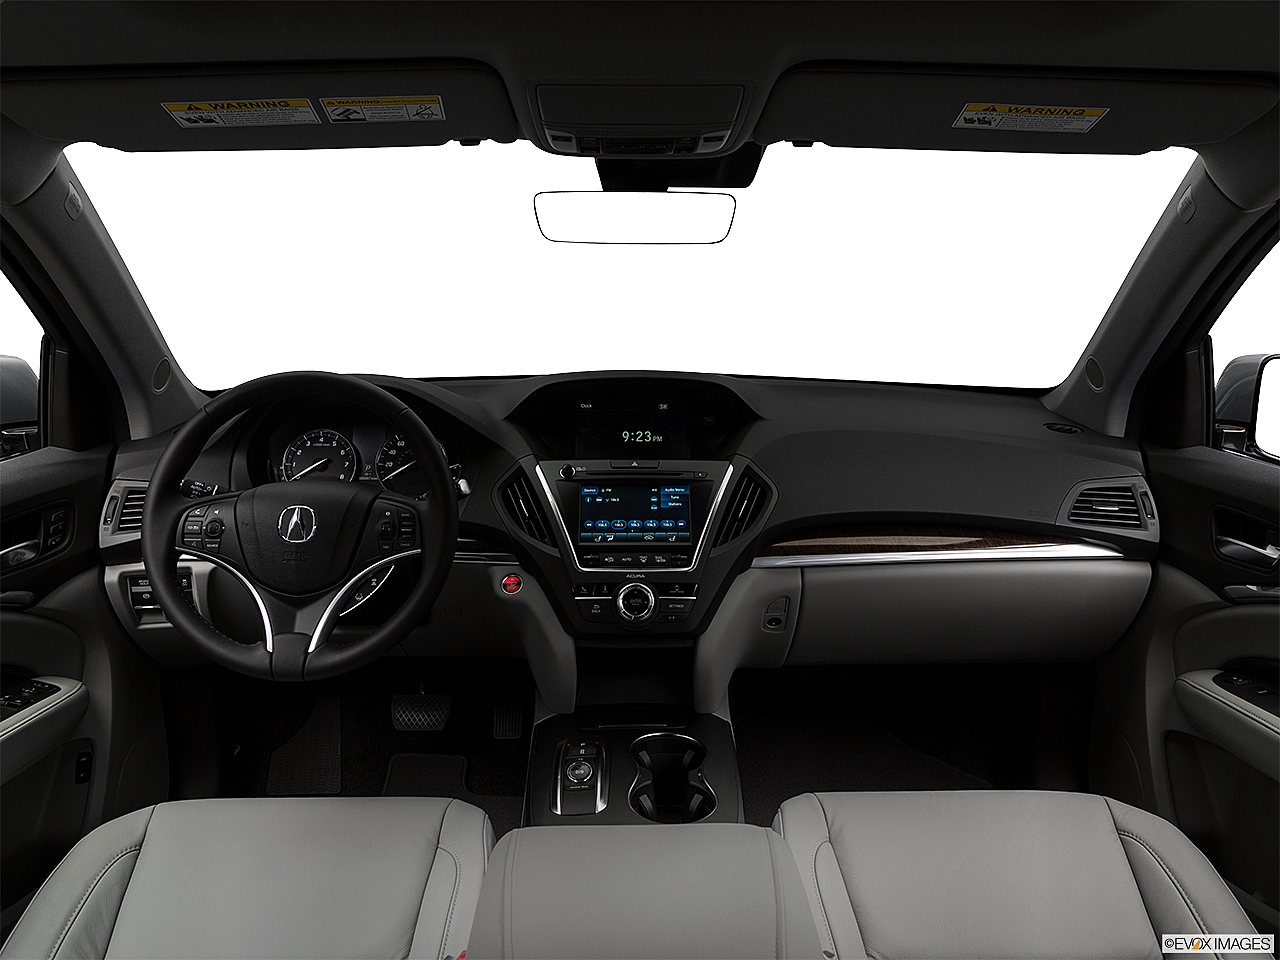 2018 Acura MDX, centered wide dash shot